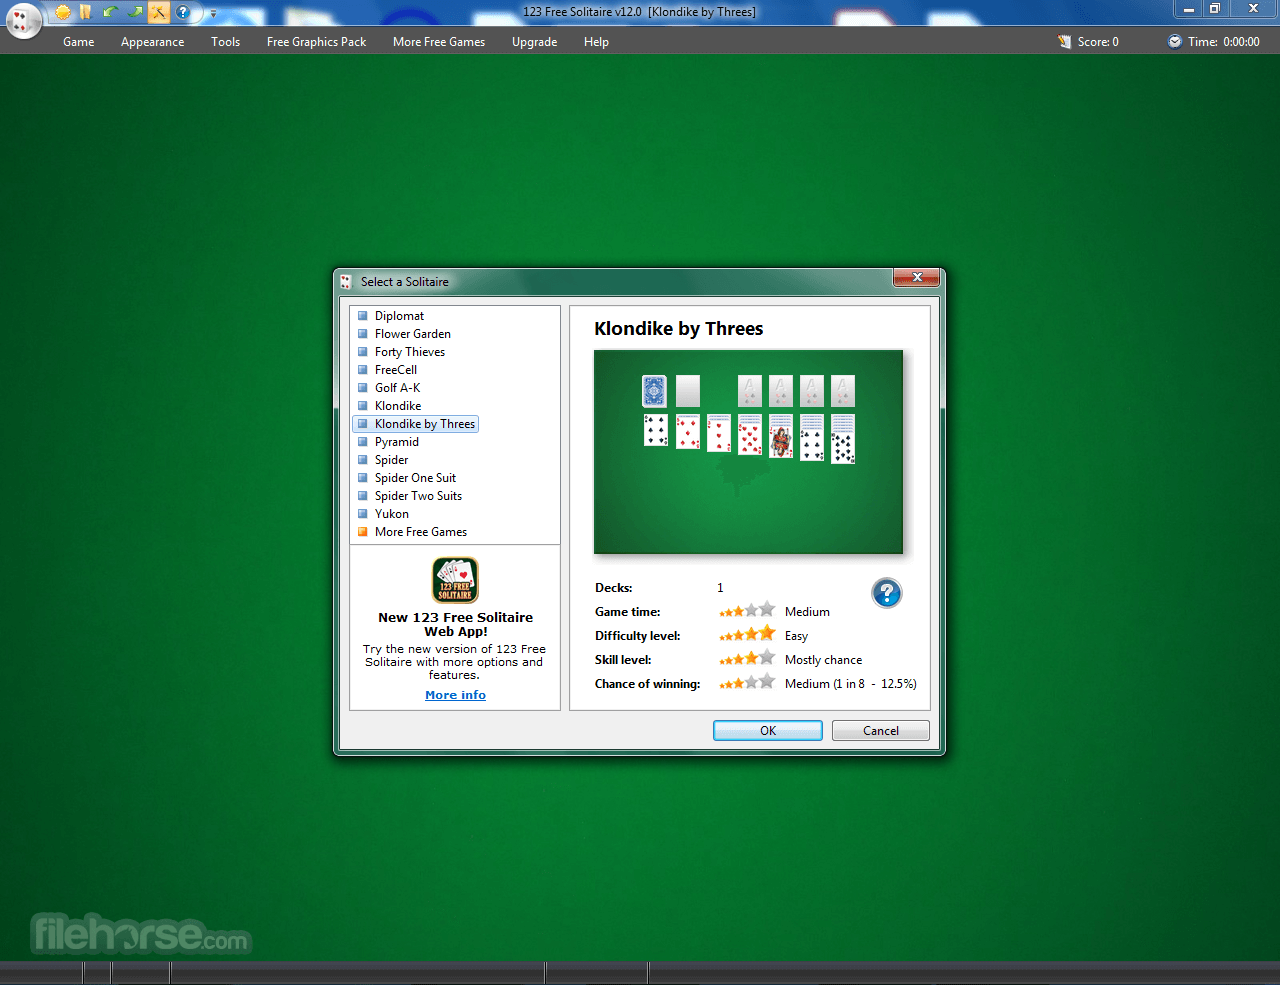 Download  123 Free Solitaire for Windows free 2021